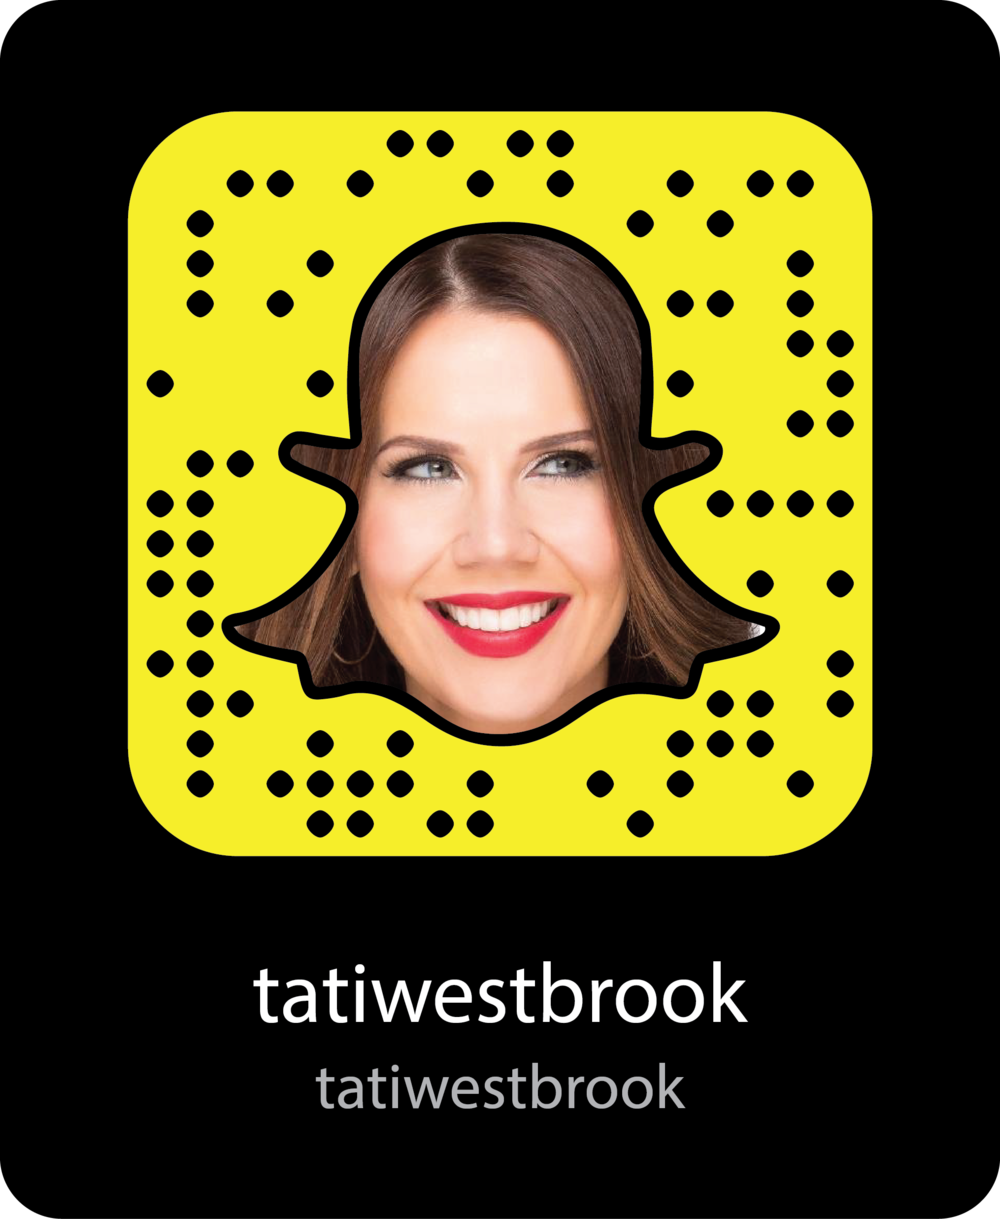 tatiwestbrook-Beauty-Bloggers-snapchat-snapcode.png